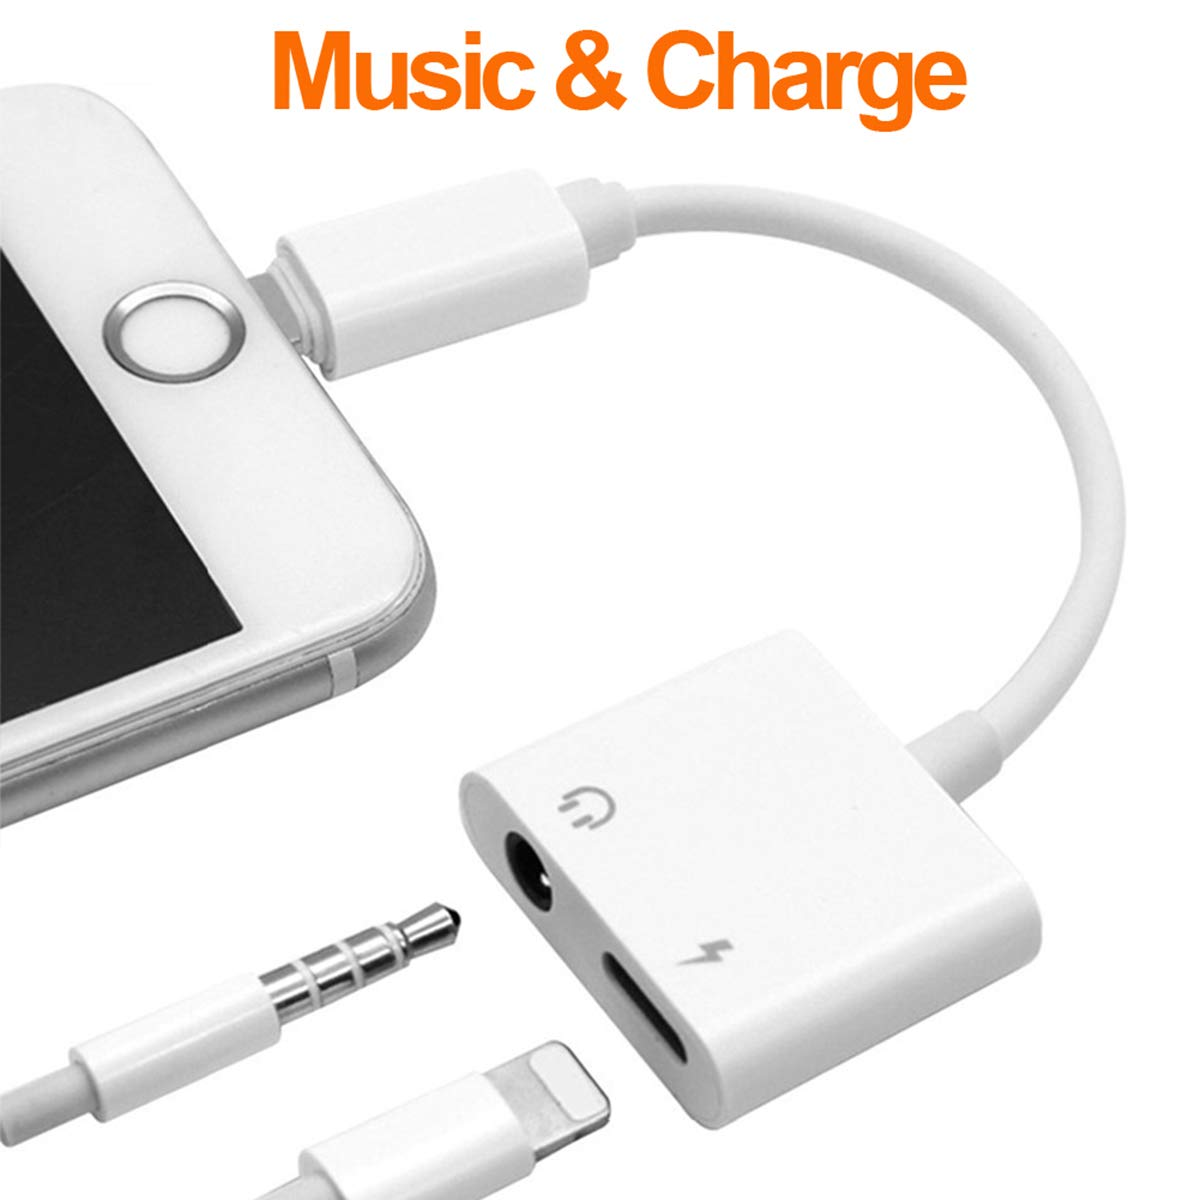 Headphone Adapter for iPhone Adapter 3.5mm Jack Charging Audio 2 in1 Jack Audio to 3.5mm Dongle Aux Splitter Converter Adaptor Cable Compatible with iPhone Xs Max XR X 8 7 Plus for iOS 10.3 or Higher BENEWY